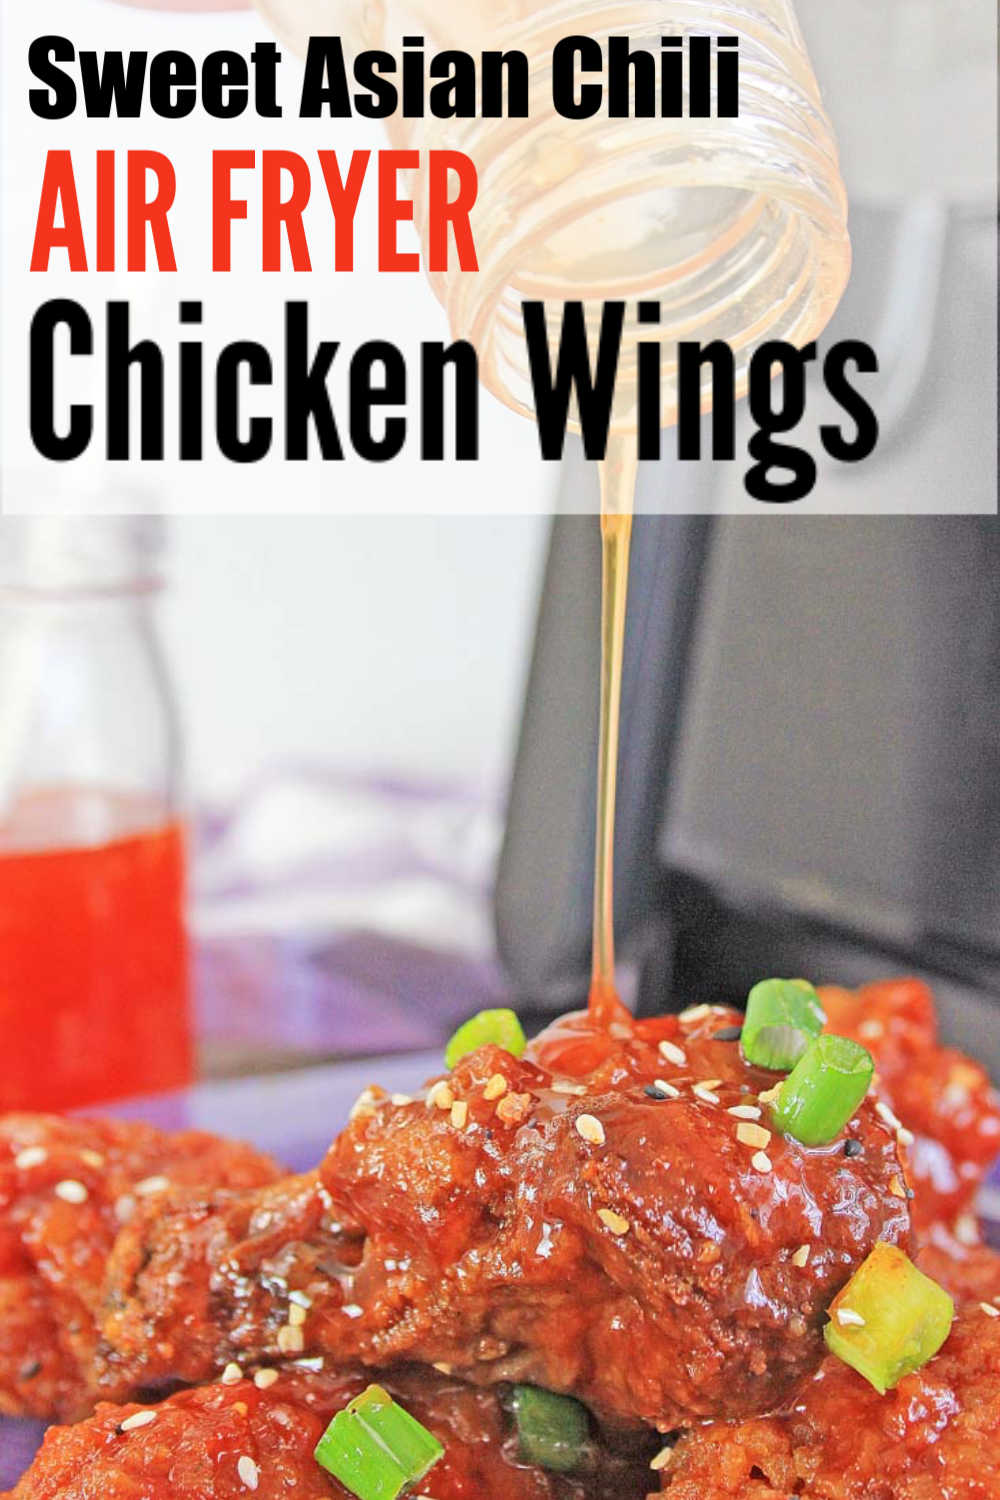 Air Fryer Sweet Asian Chili Chicken Wings